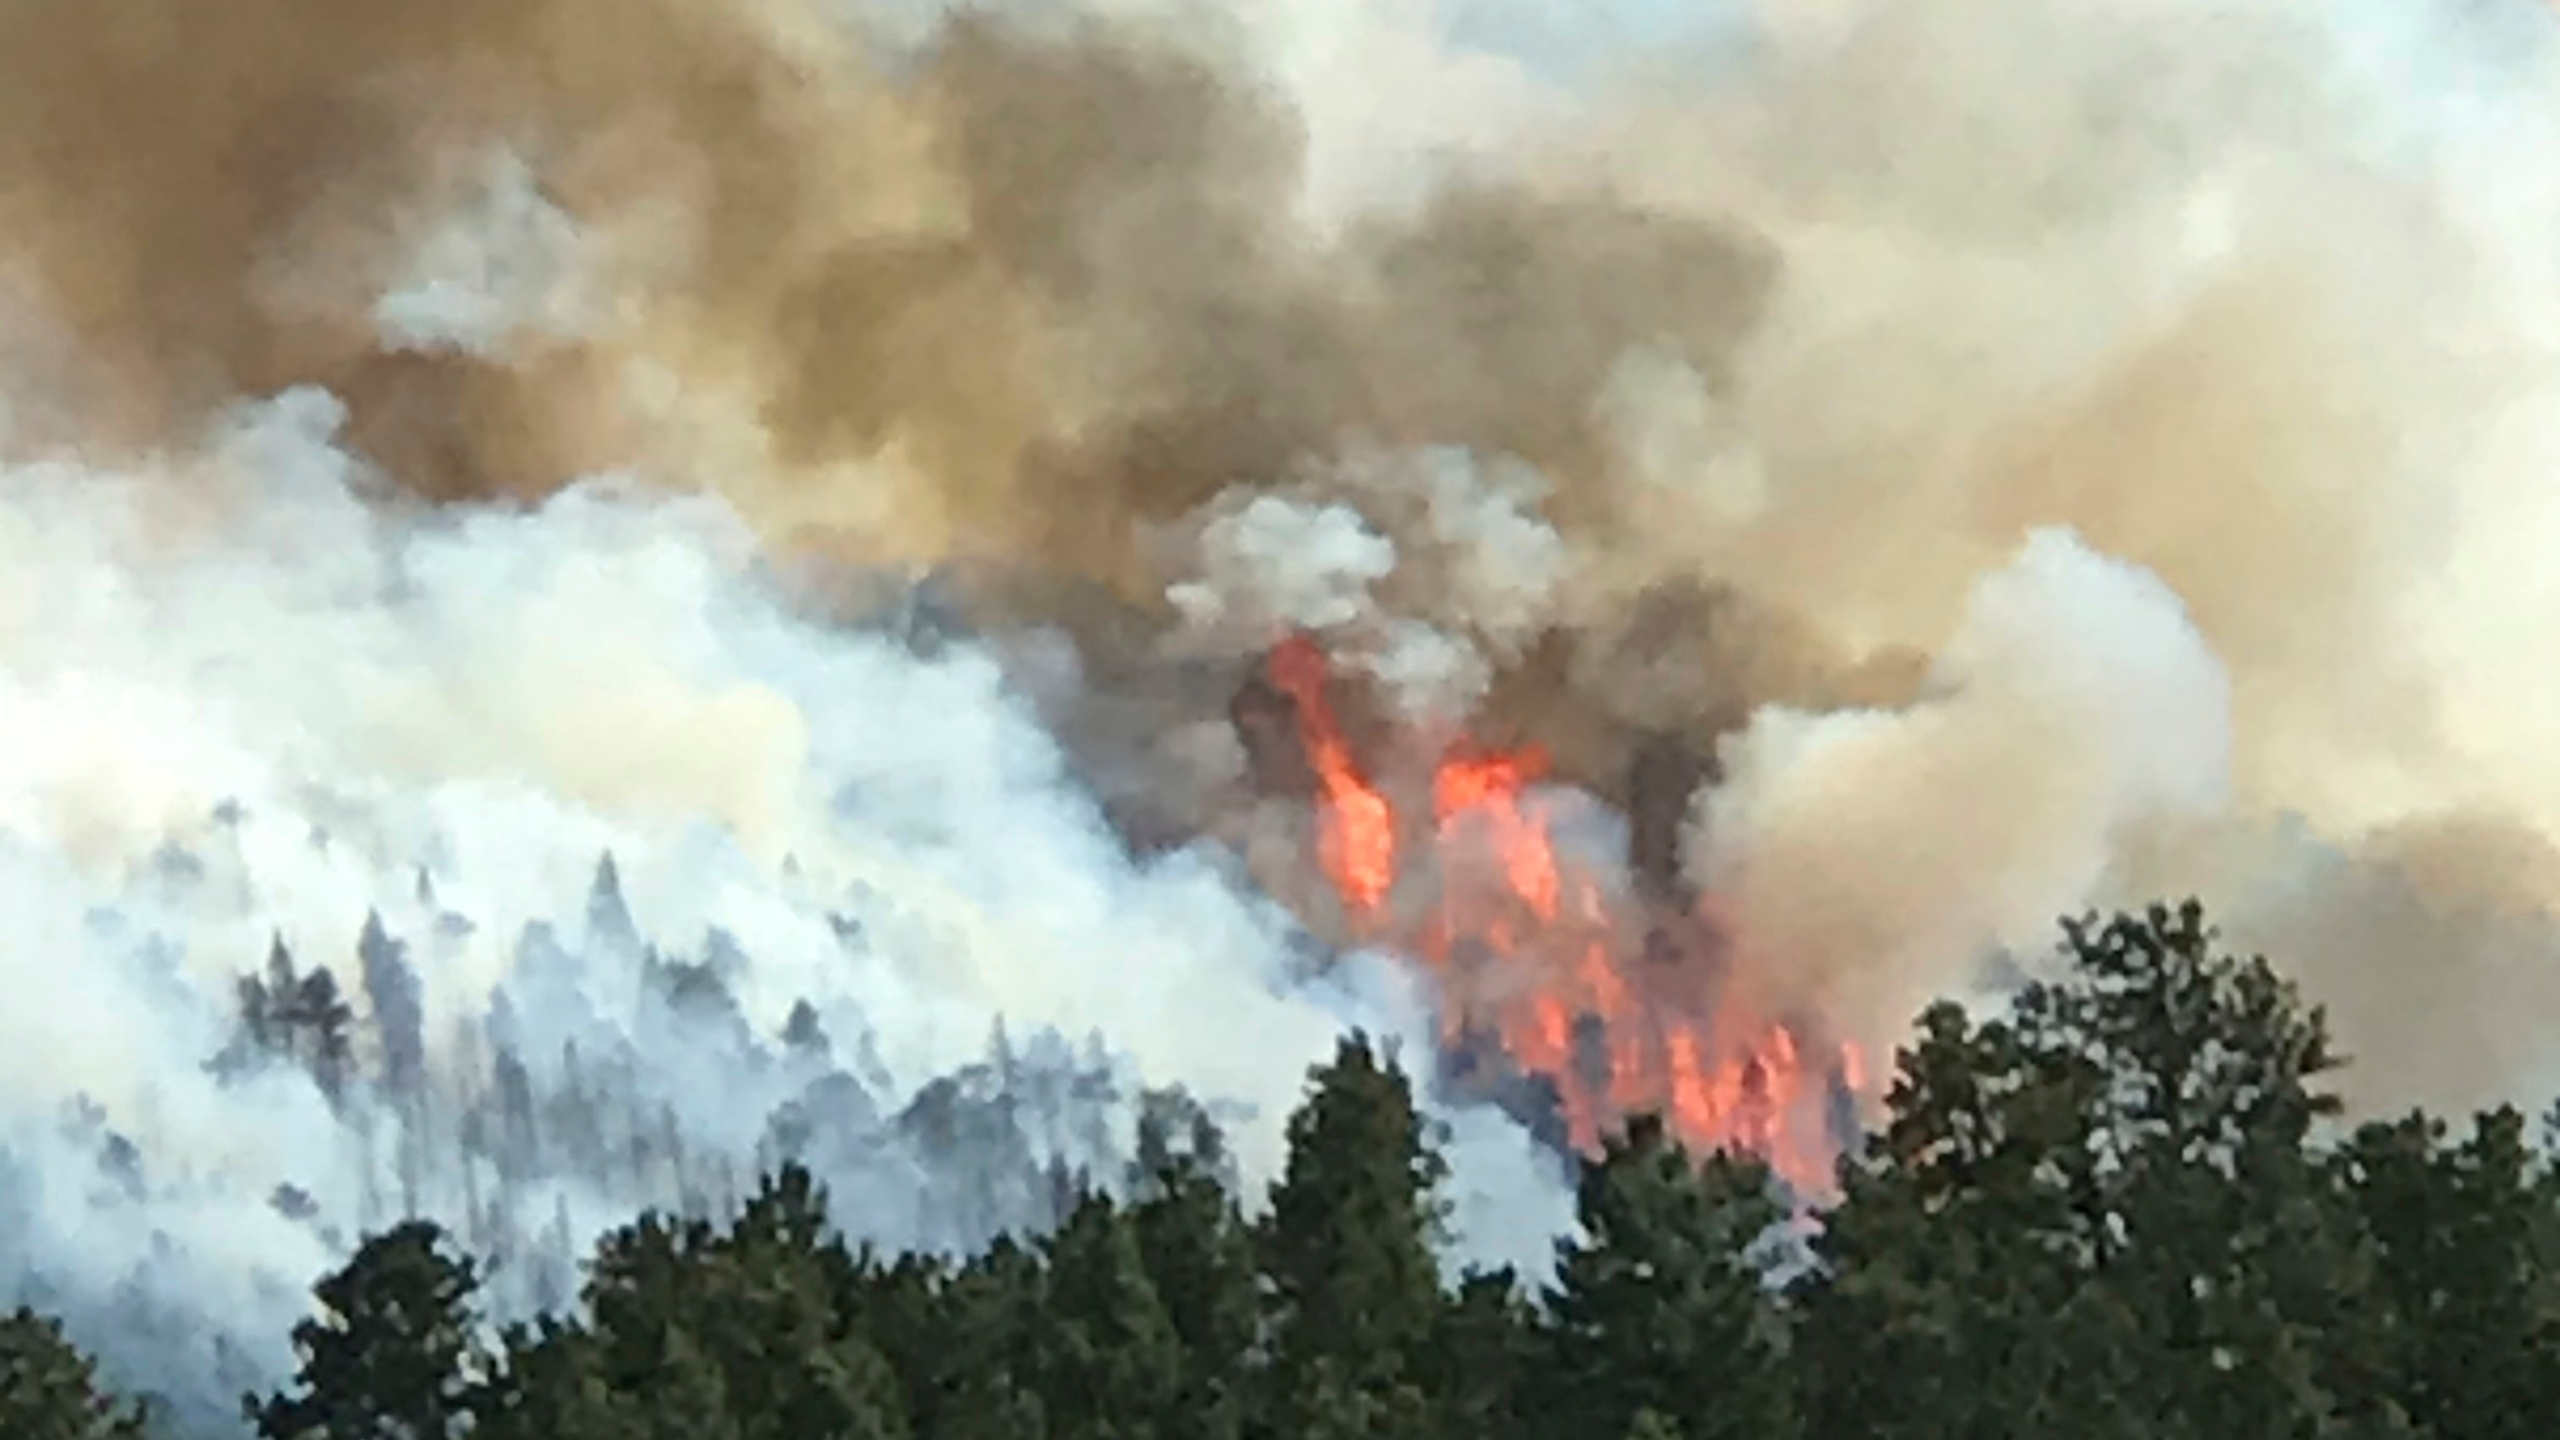 In this photo provided by Robert Brown, a wildfire burns west of Evergreen, Colo., Monday, July 13, 2020. (Robert Brown via AP)